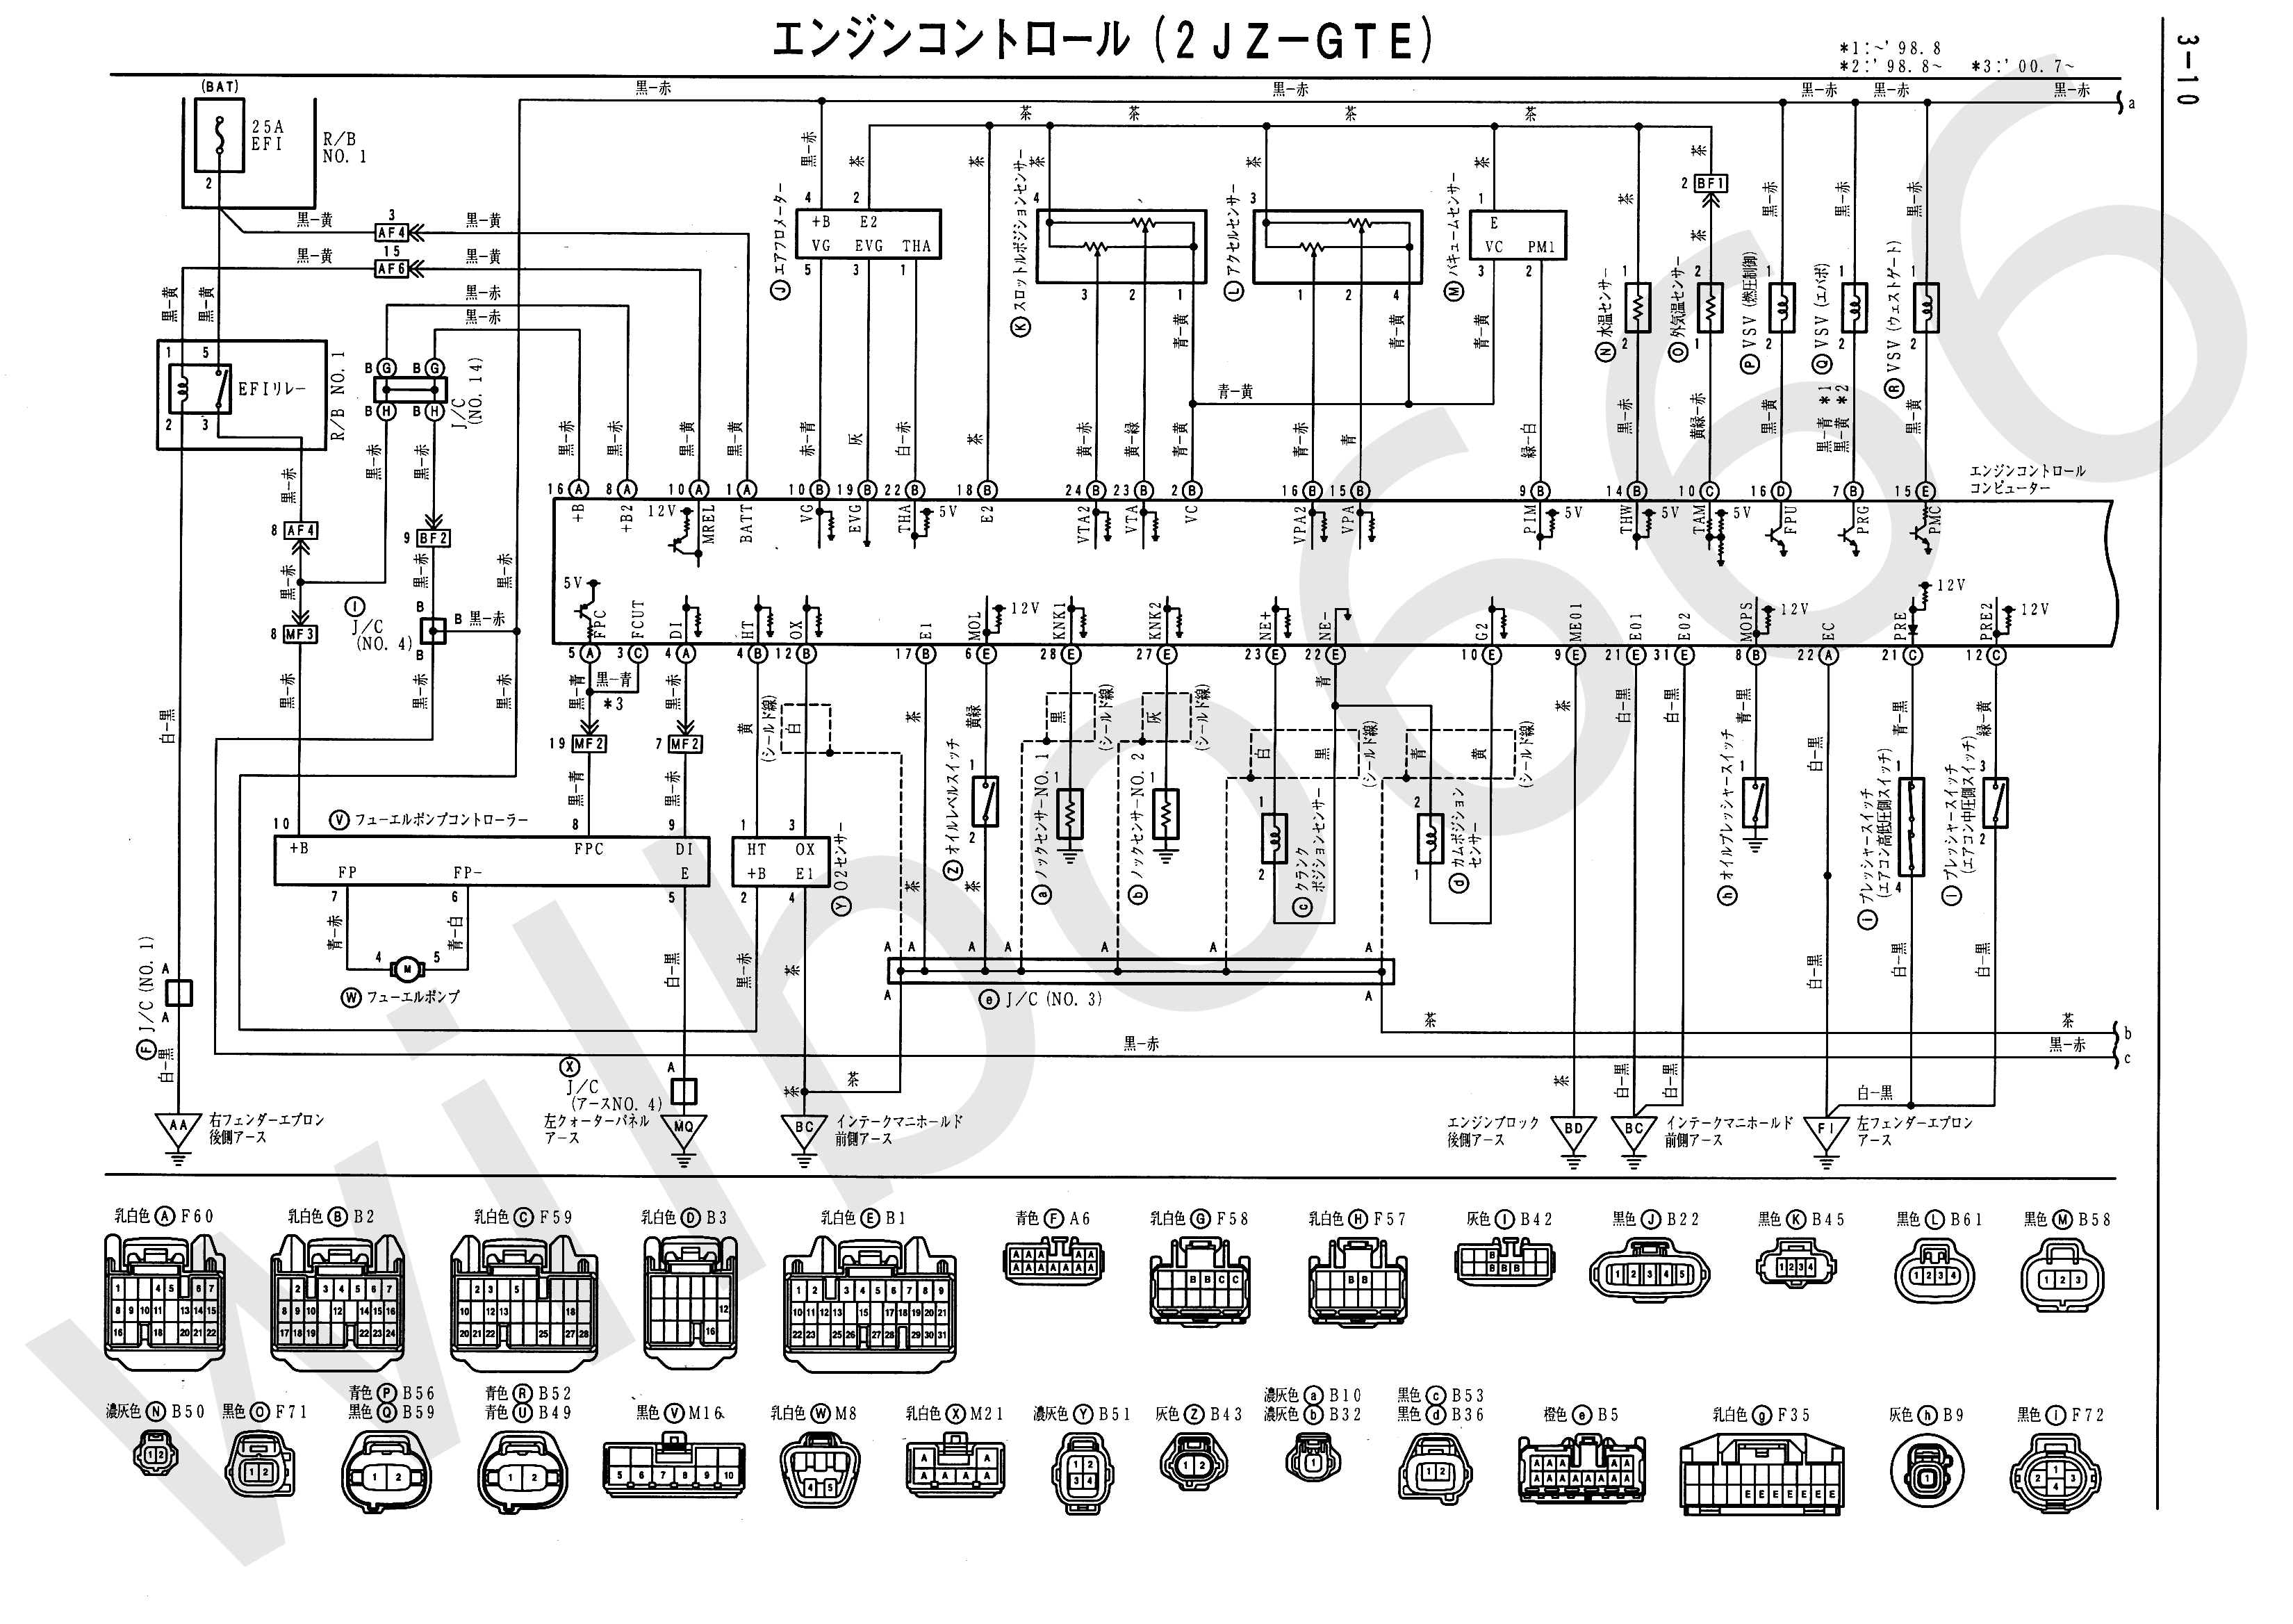 JZS161 Electrical Wiring Diagram 6748505 3 10 wilbo666 2jz gte vvti jzs161 aristo engine wiring 2jzgte vvti wiring harness at suagrazia.org